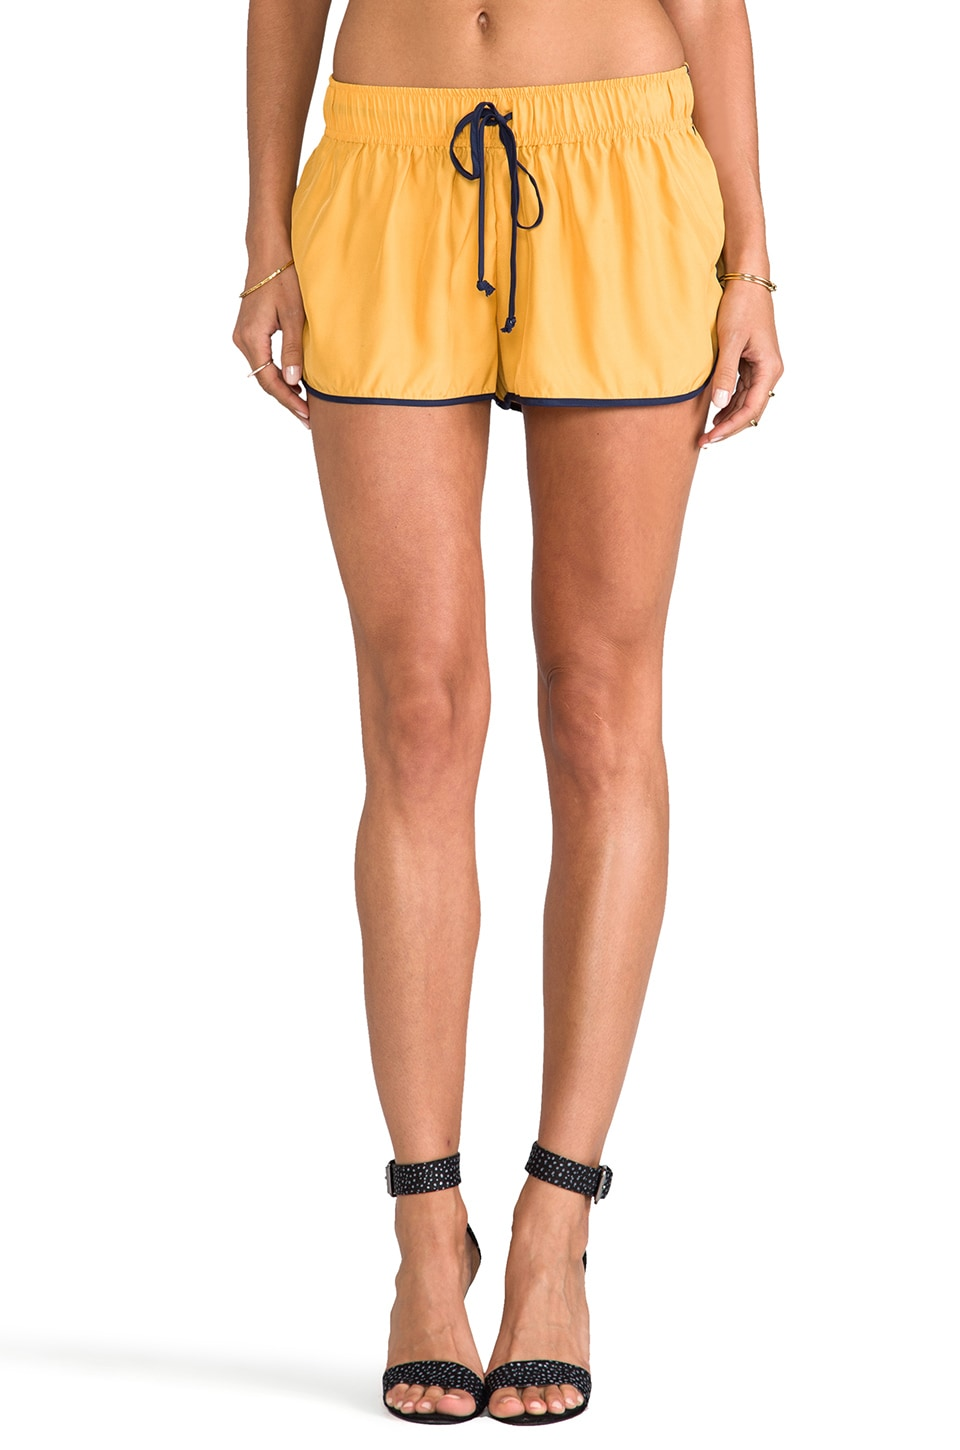 Rachel Antonoff Betsy Draw String Short in Mustard/ Midnight